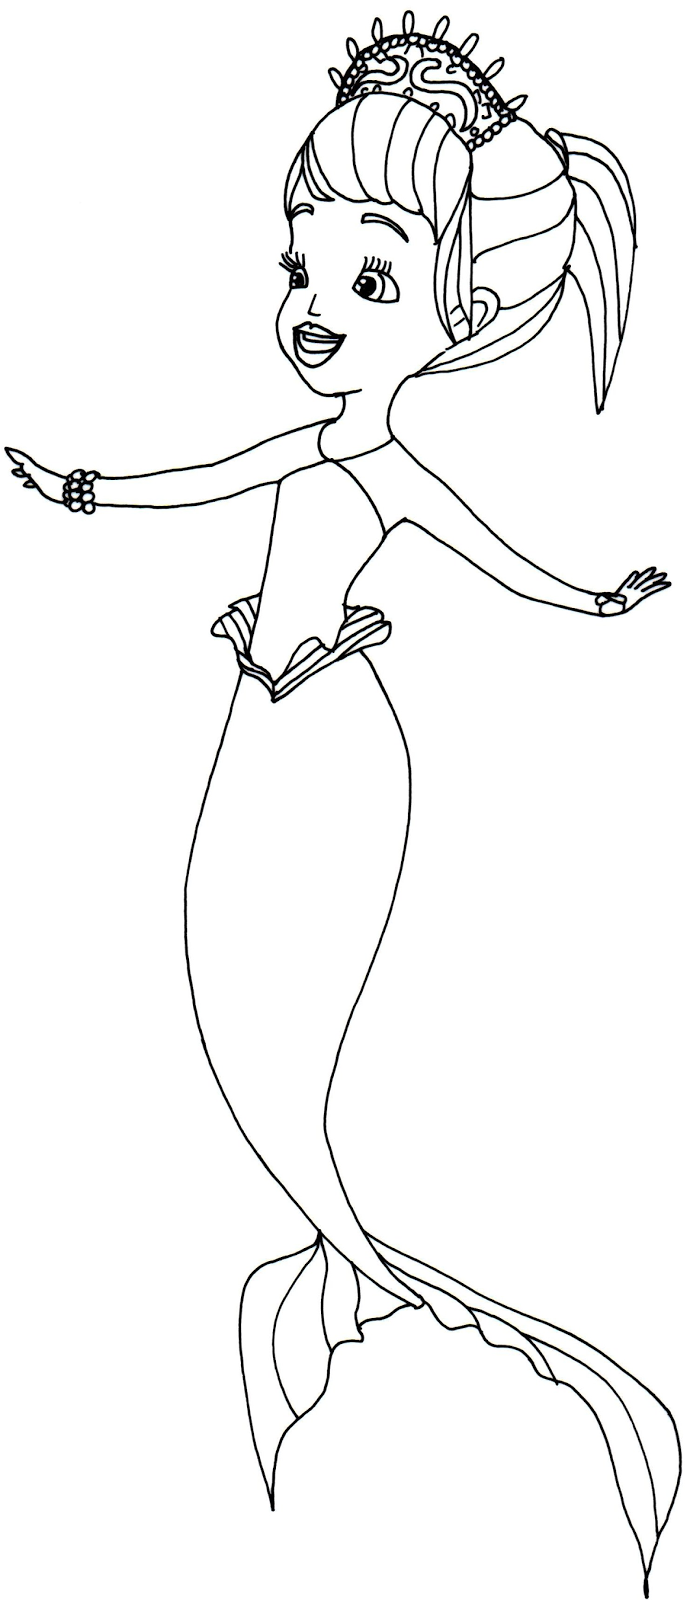 Princess sofia coloring pages games